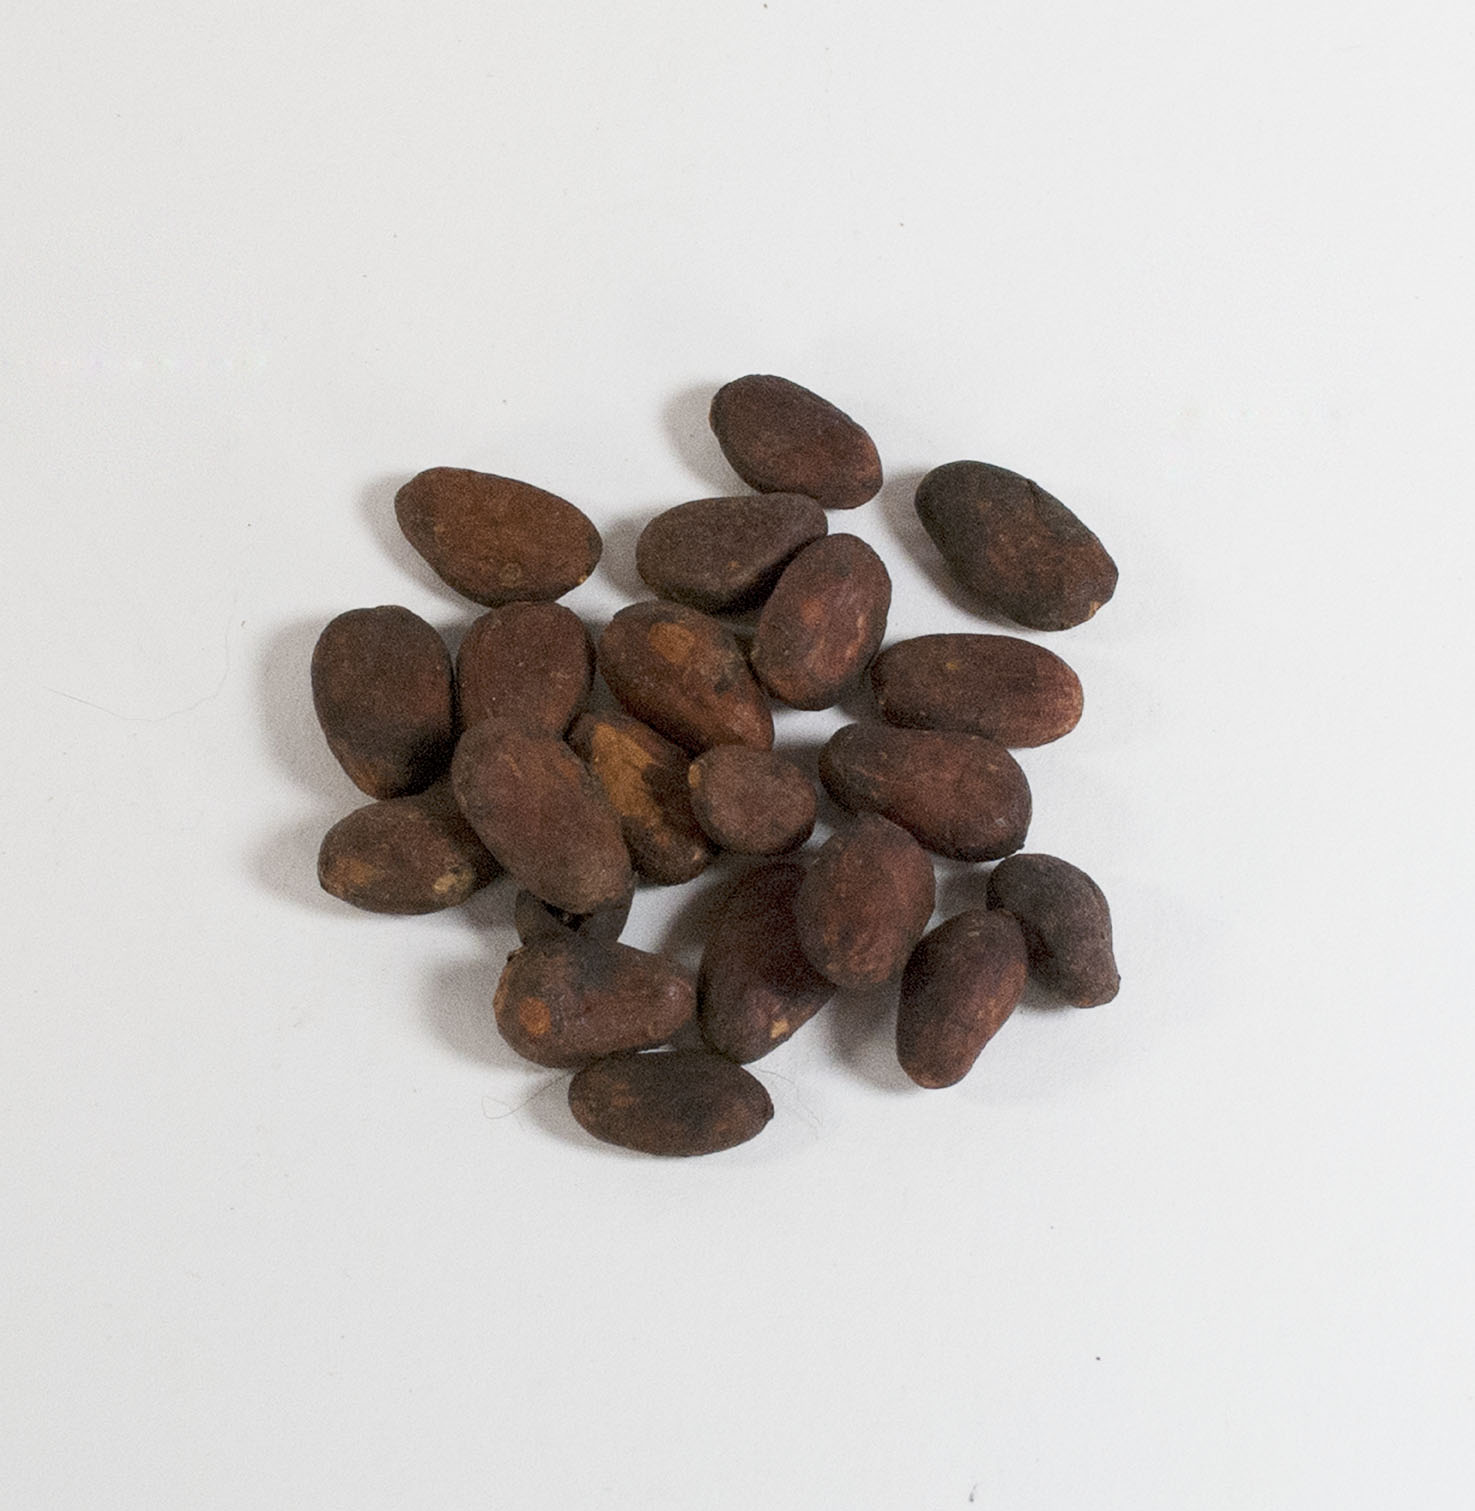 [group of cacao beans]